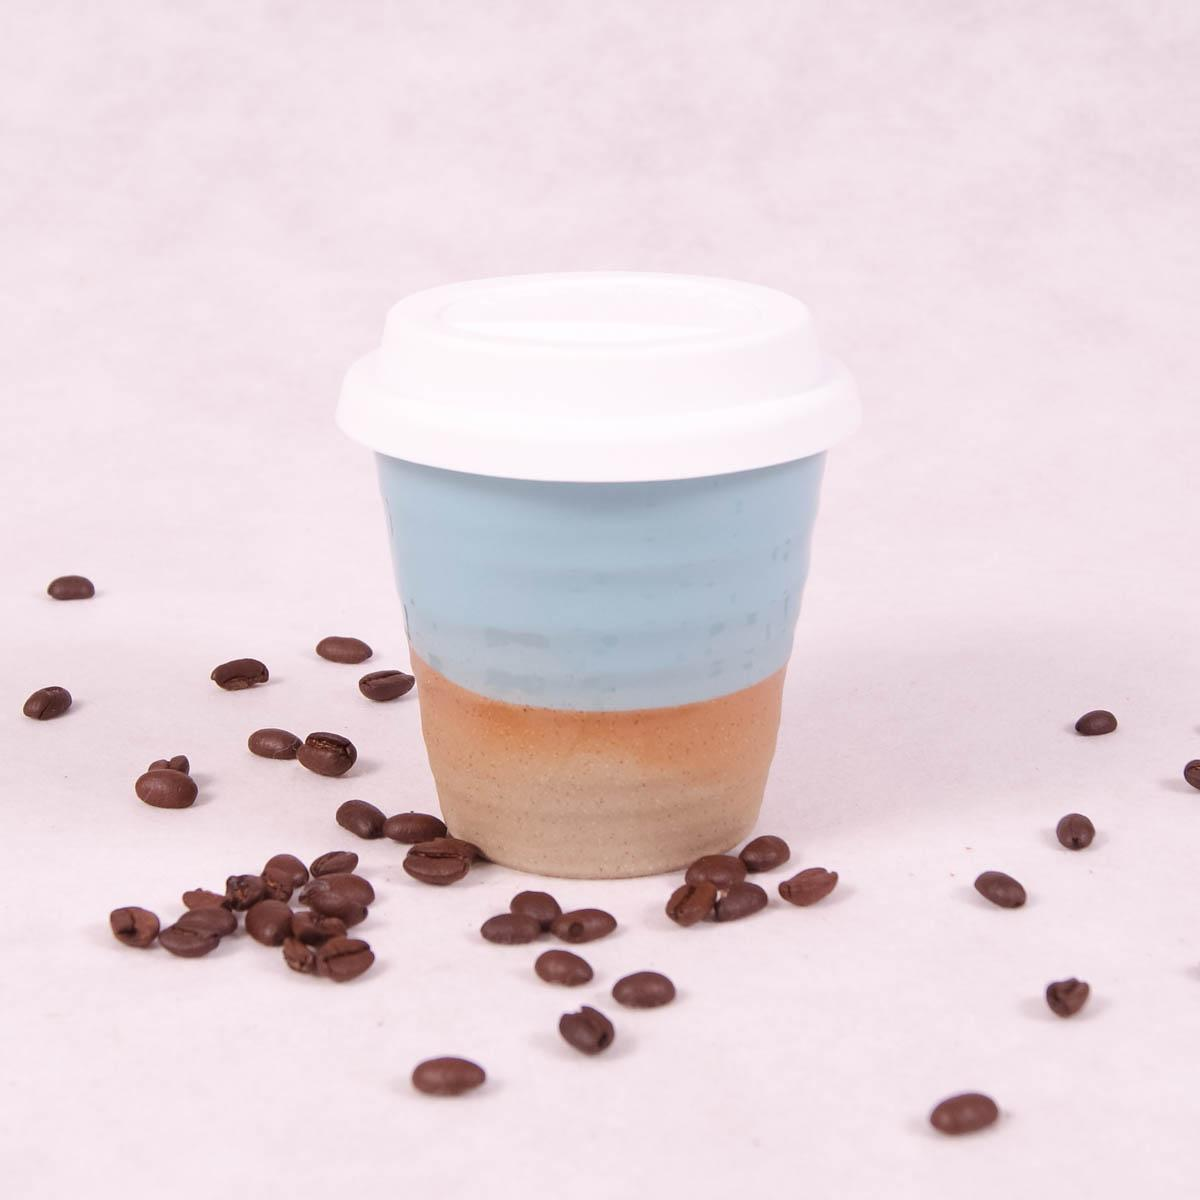 Winter Pastels Ceramic Carousel Cup Small - Turquoise - Travel Cup - Throw Some Seeds - Australian gardening gifts and eco products online!